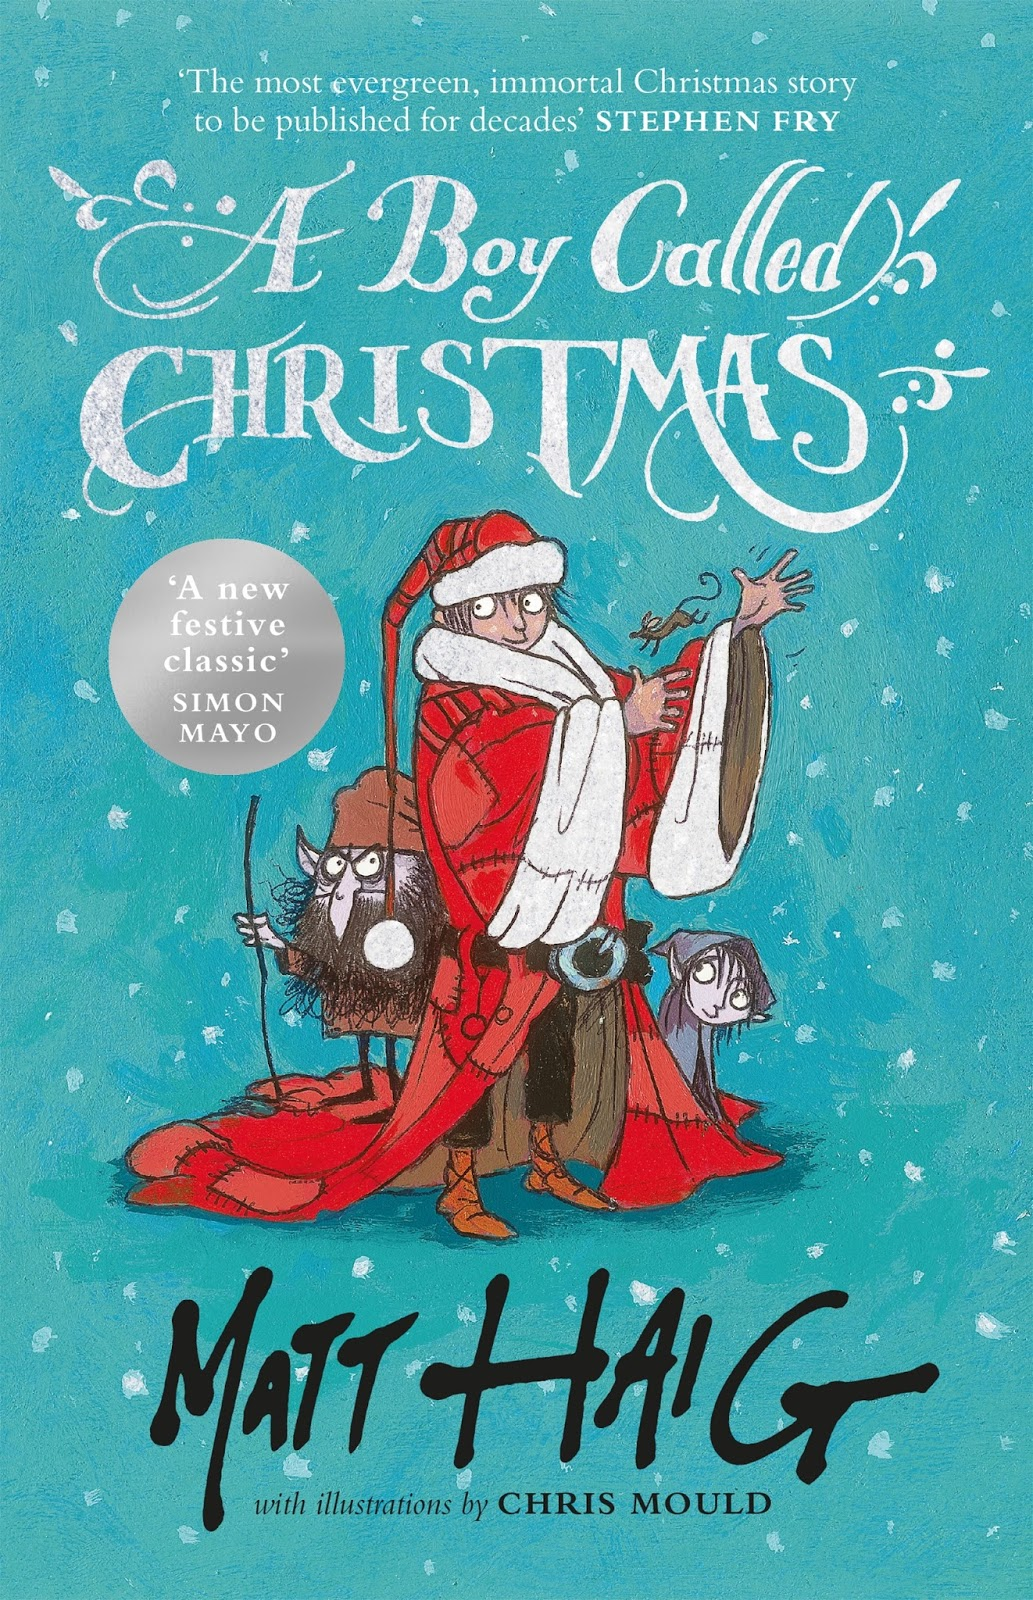 childrens 8 - Classic Christmas Books